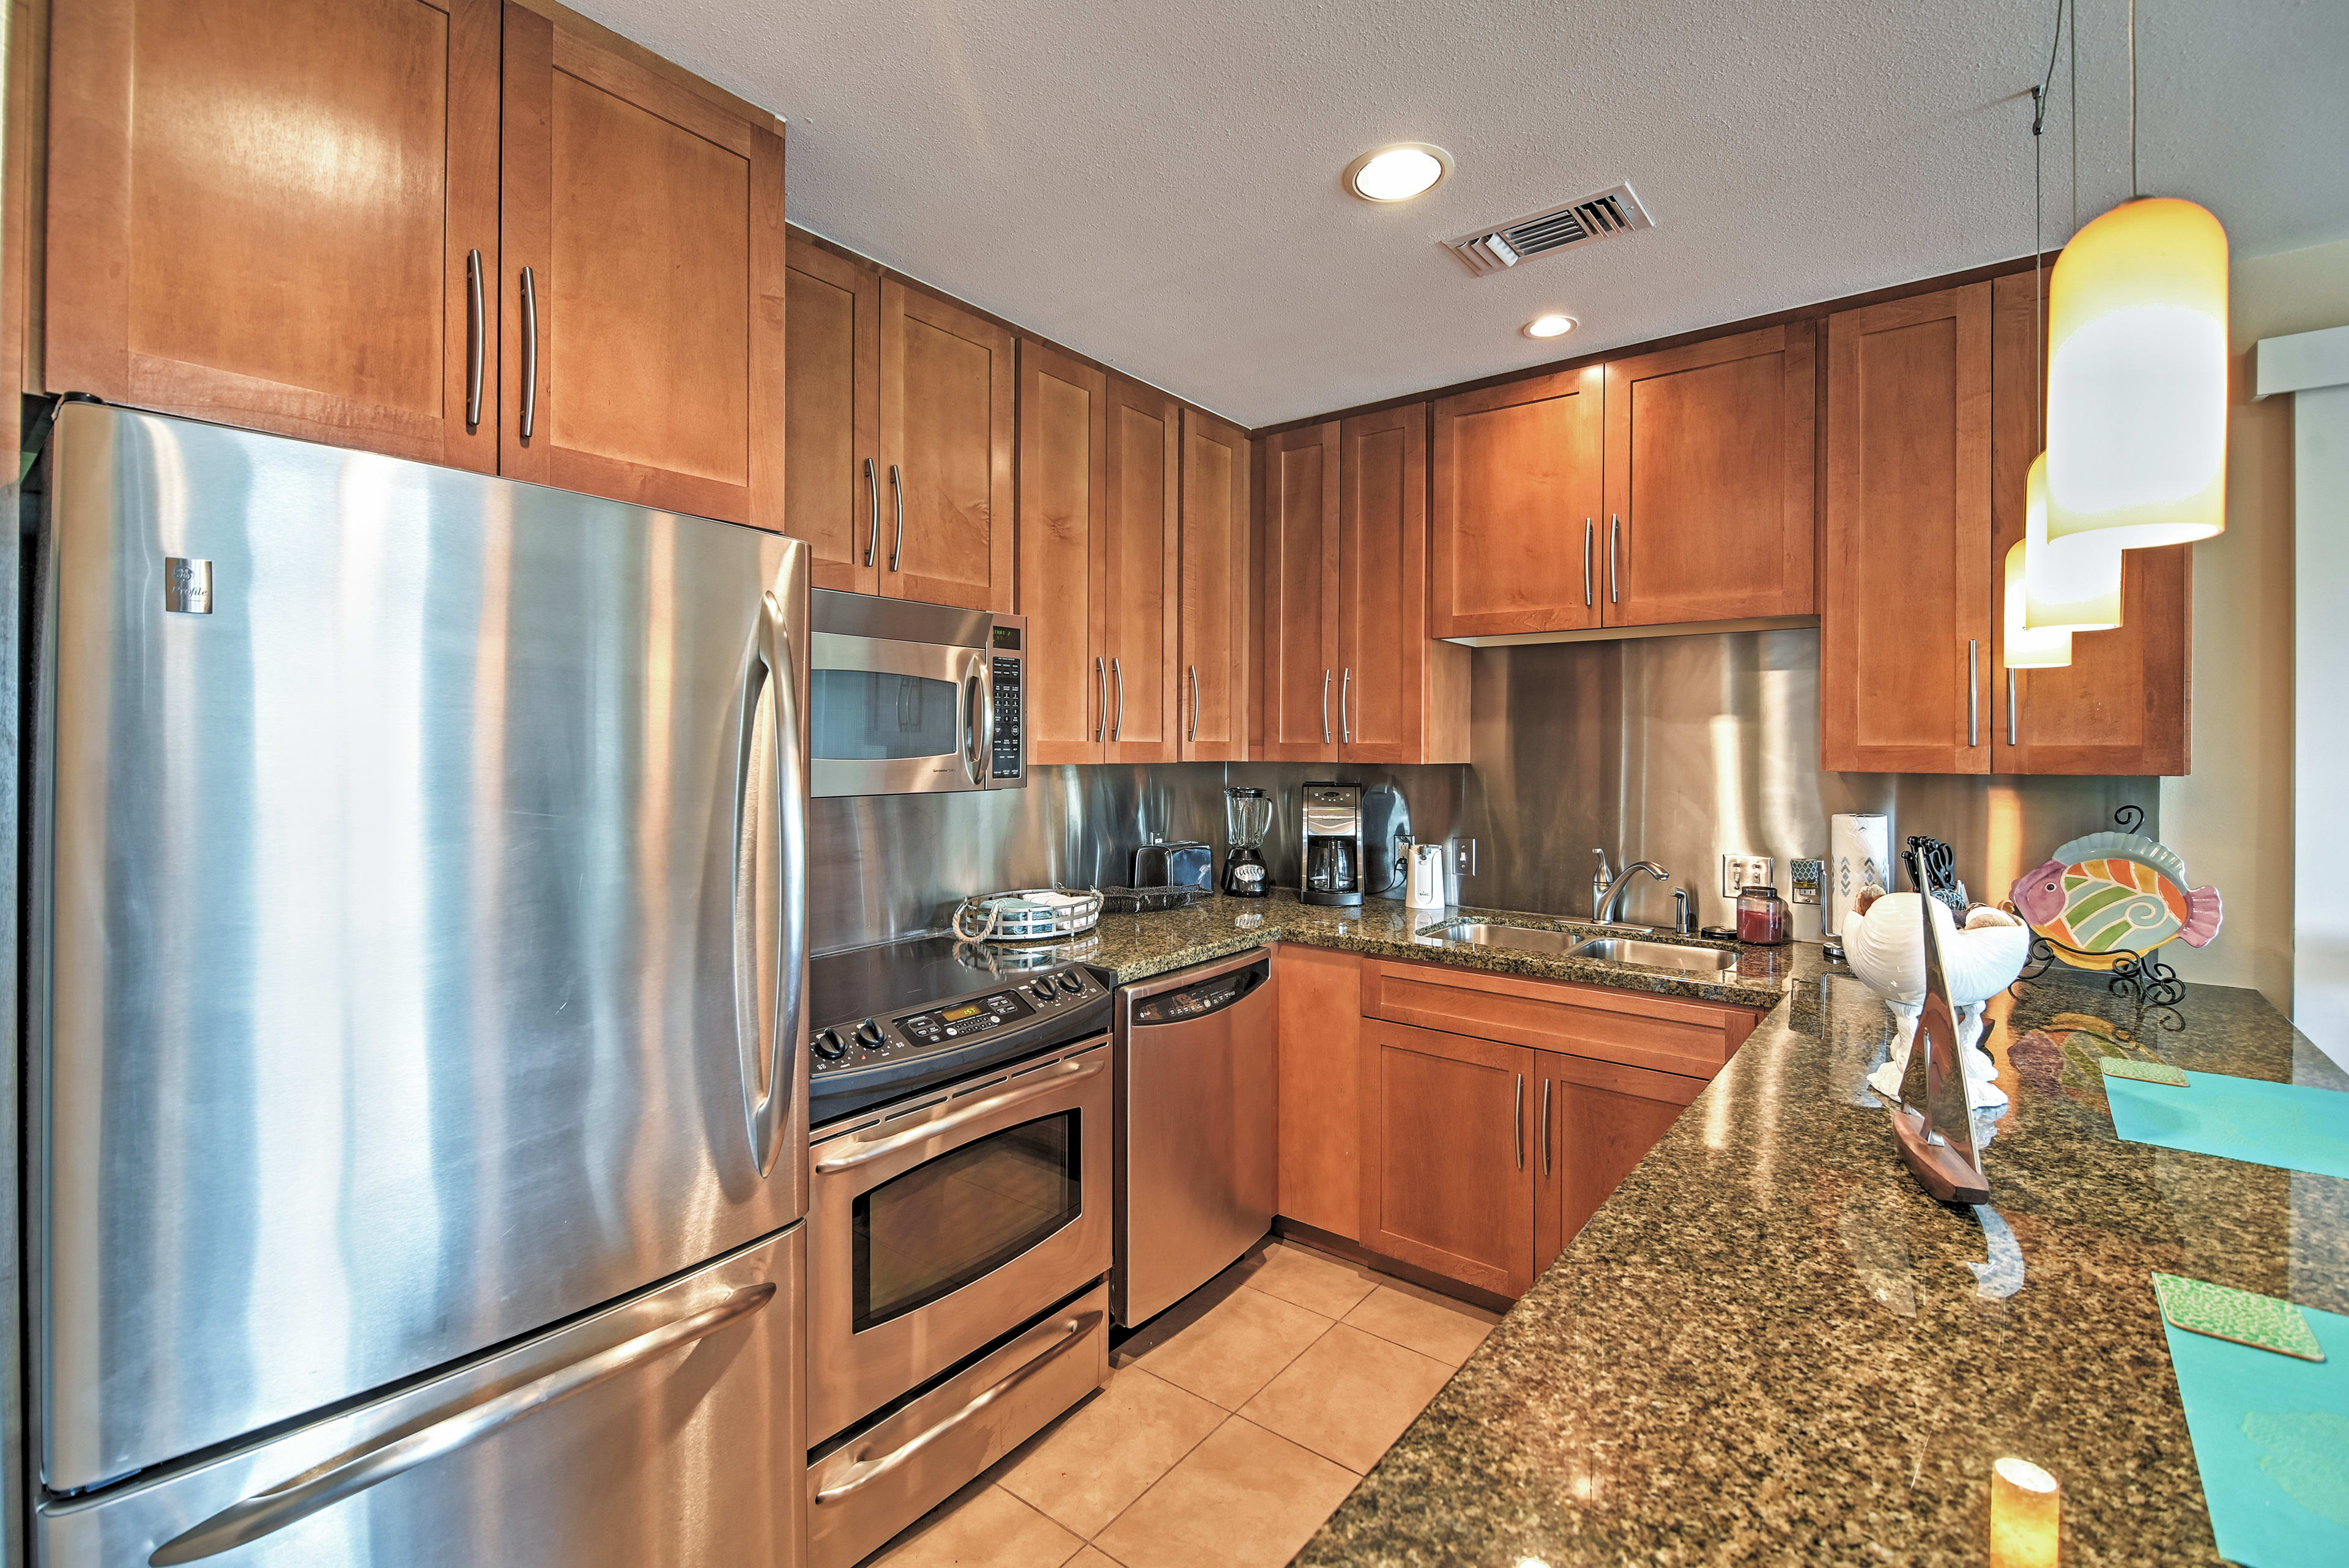 Prepare delicious home-cooked meals in the fully equipped gourmet kitchen.